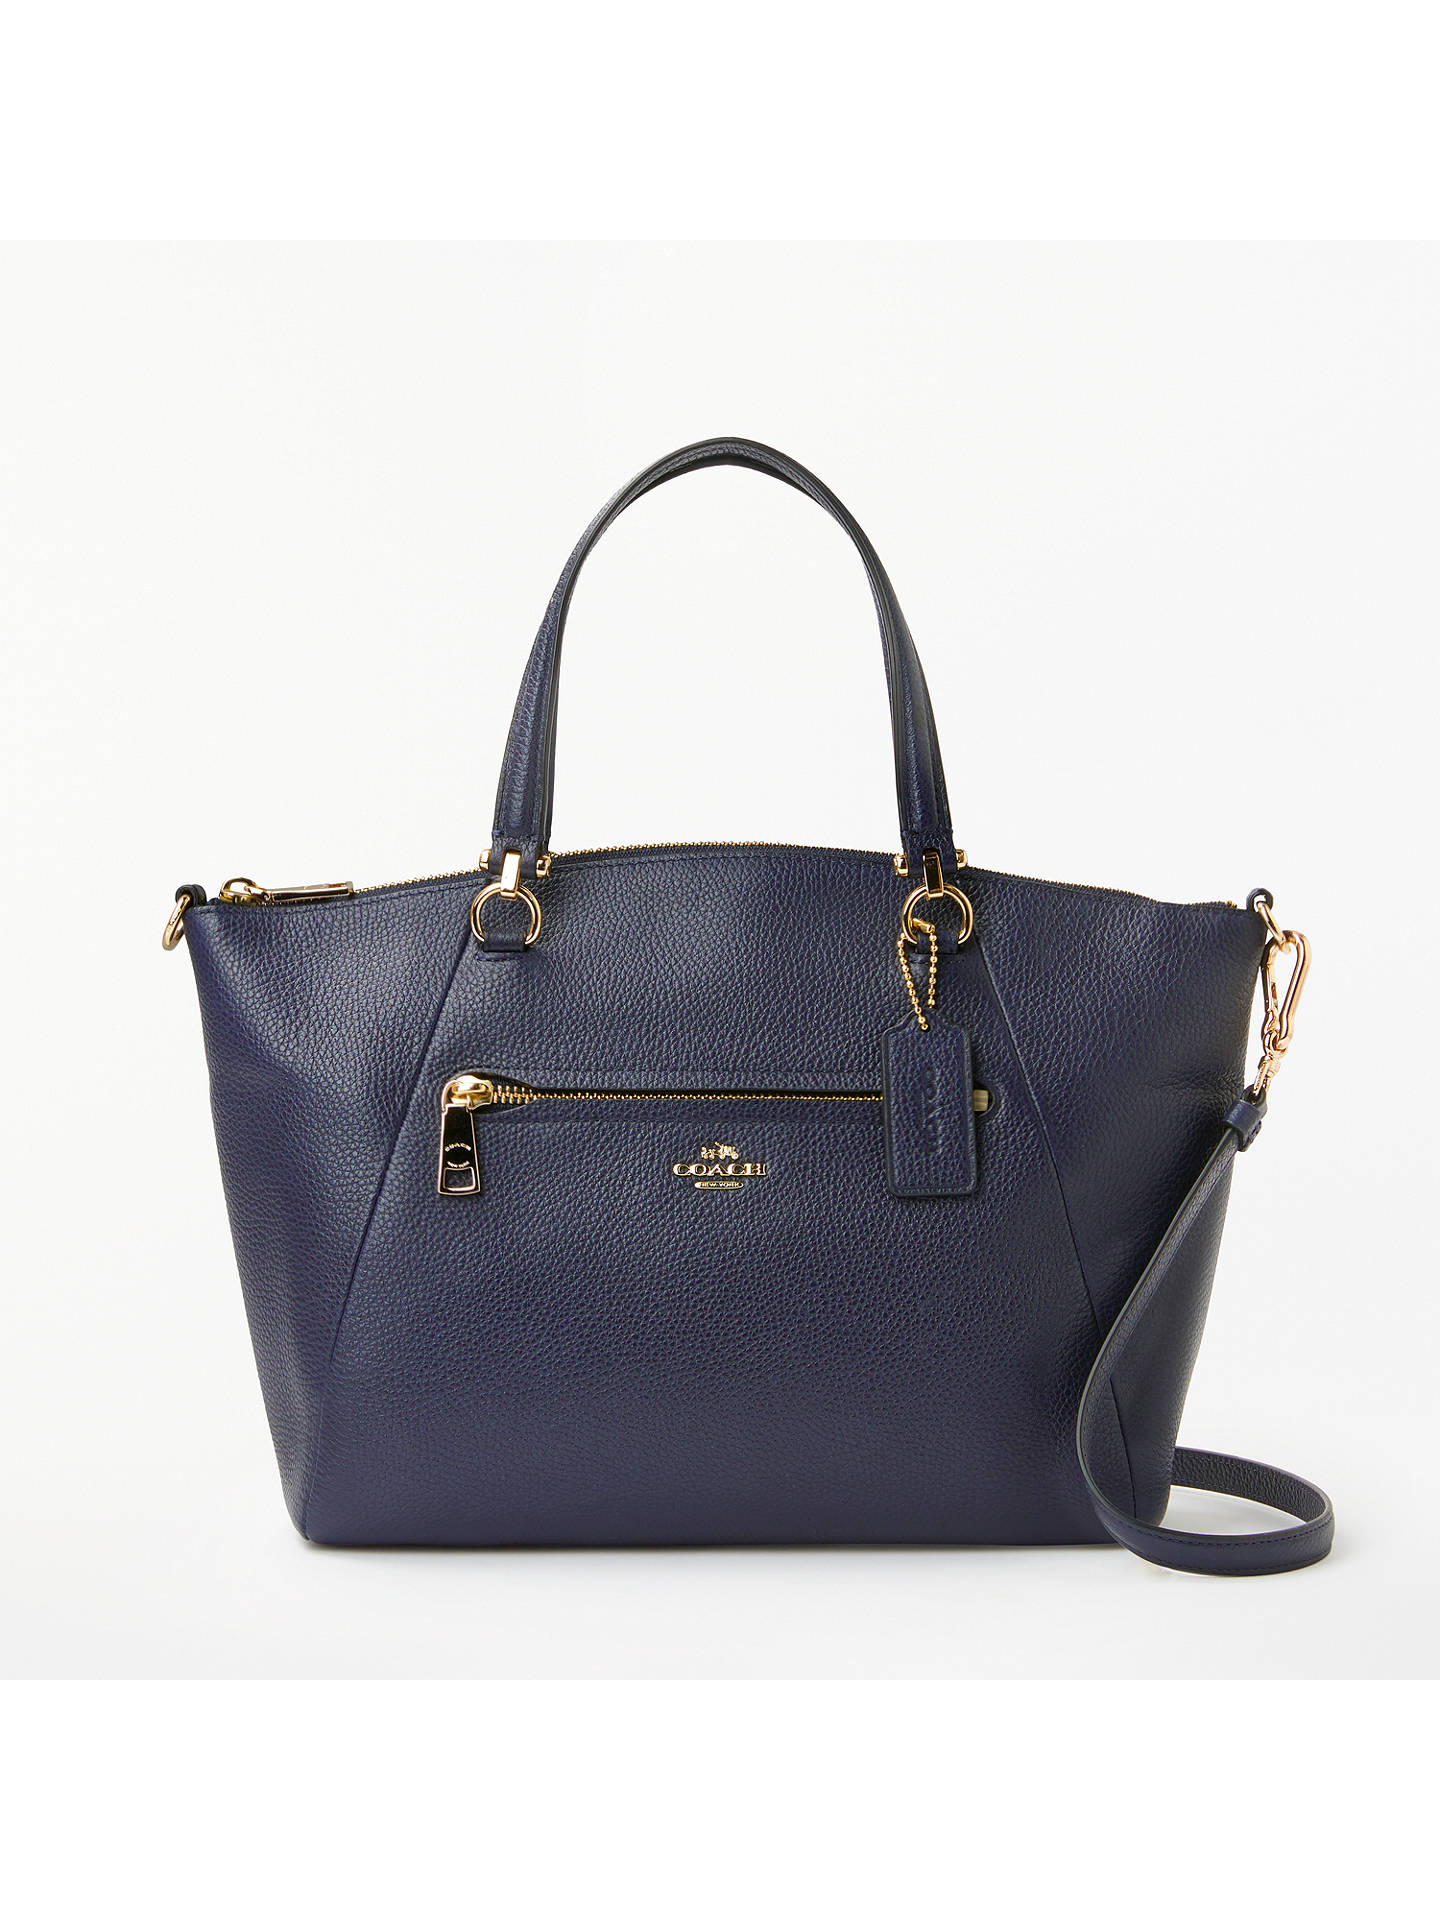 Coach Prairie Pebble Leather Satchel Bag, Navy by Coach